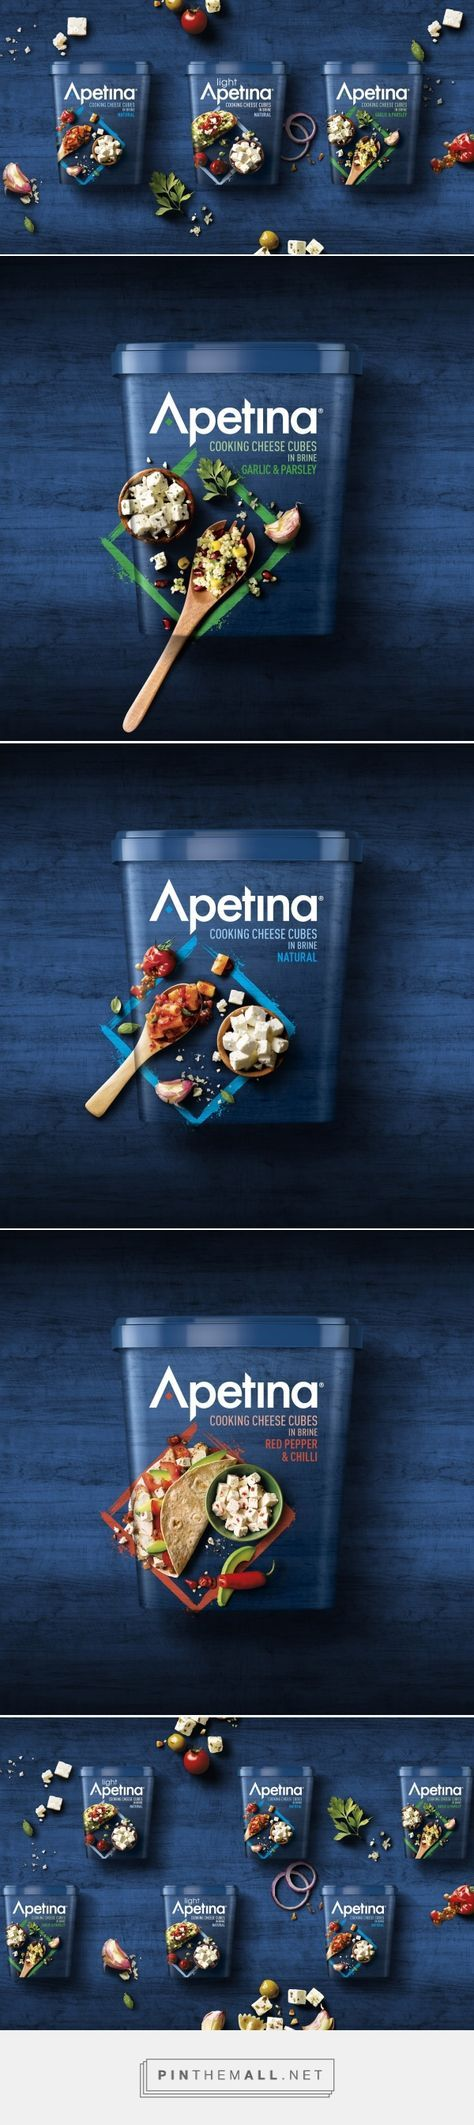 Apetina Redesign - Packaging of the World - Creative Package Design Gallery - http://www.packagingoftheworld.com/2017/06/apetina-redesign.html